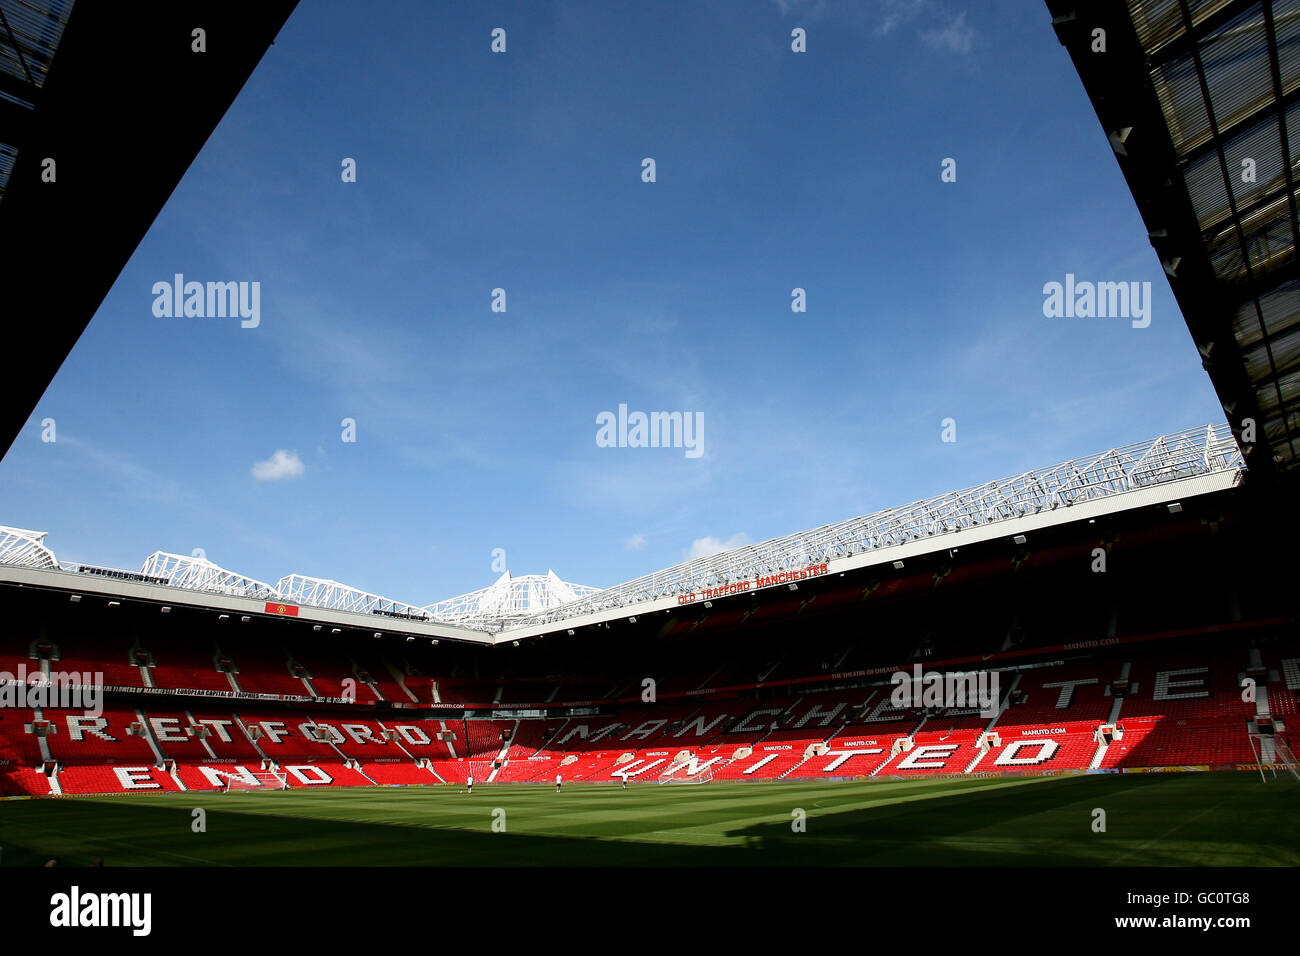 Soccer - Manchester United Training Session - Old Trafford - Stock Image